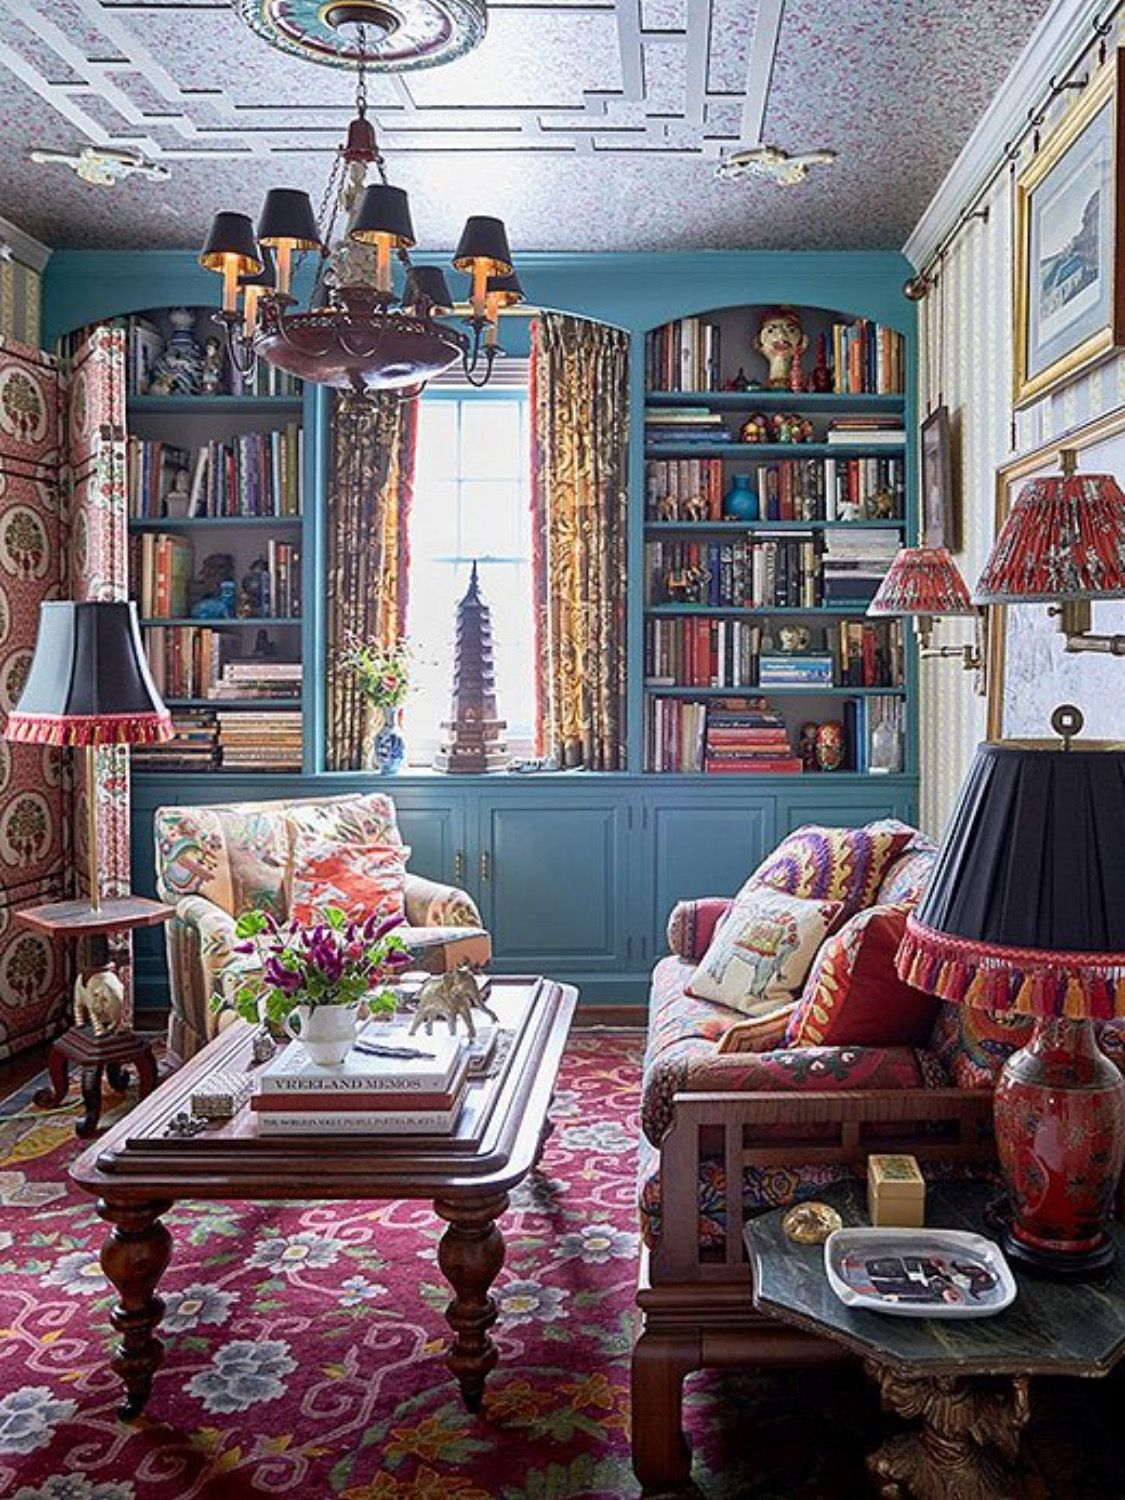 Cozy And Colorful Maximalist Interior Living Room